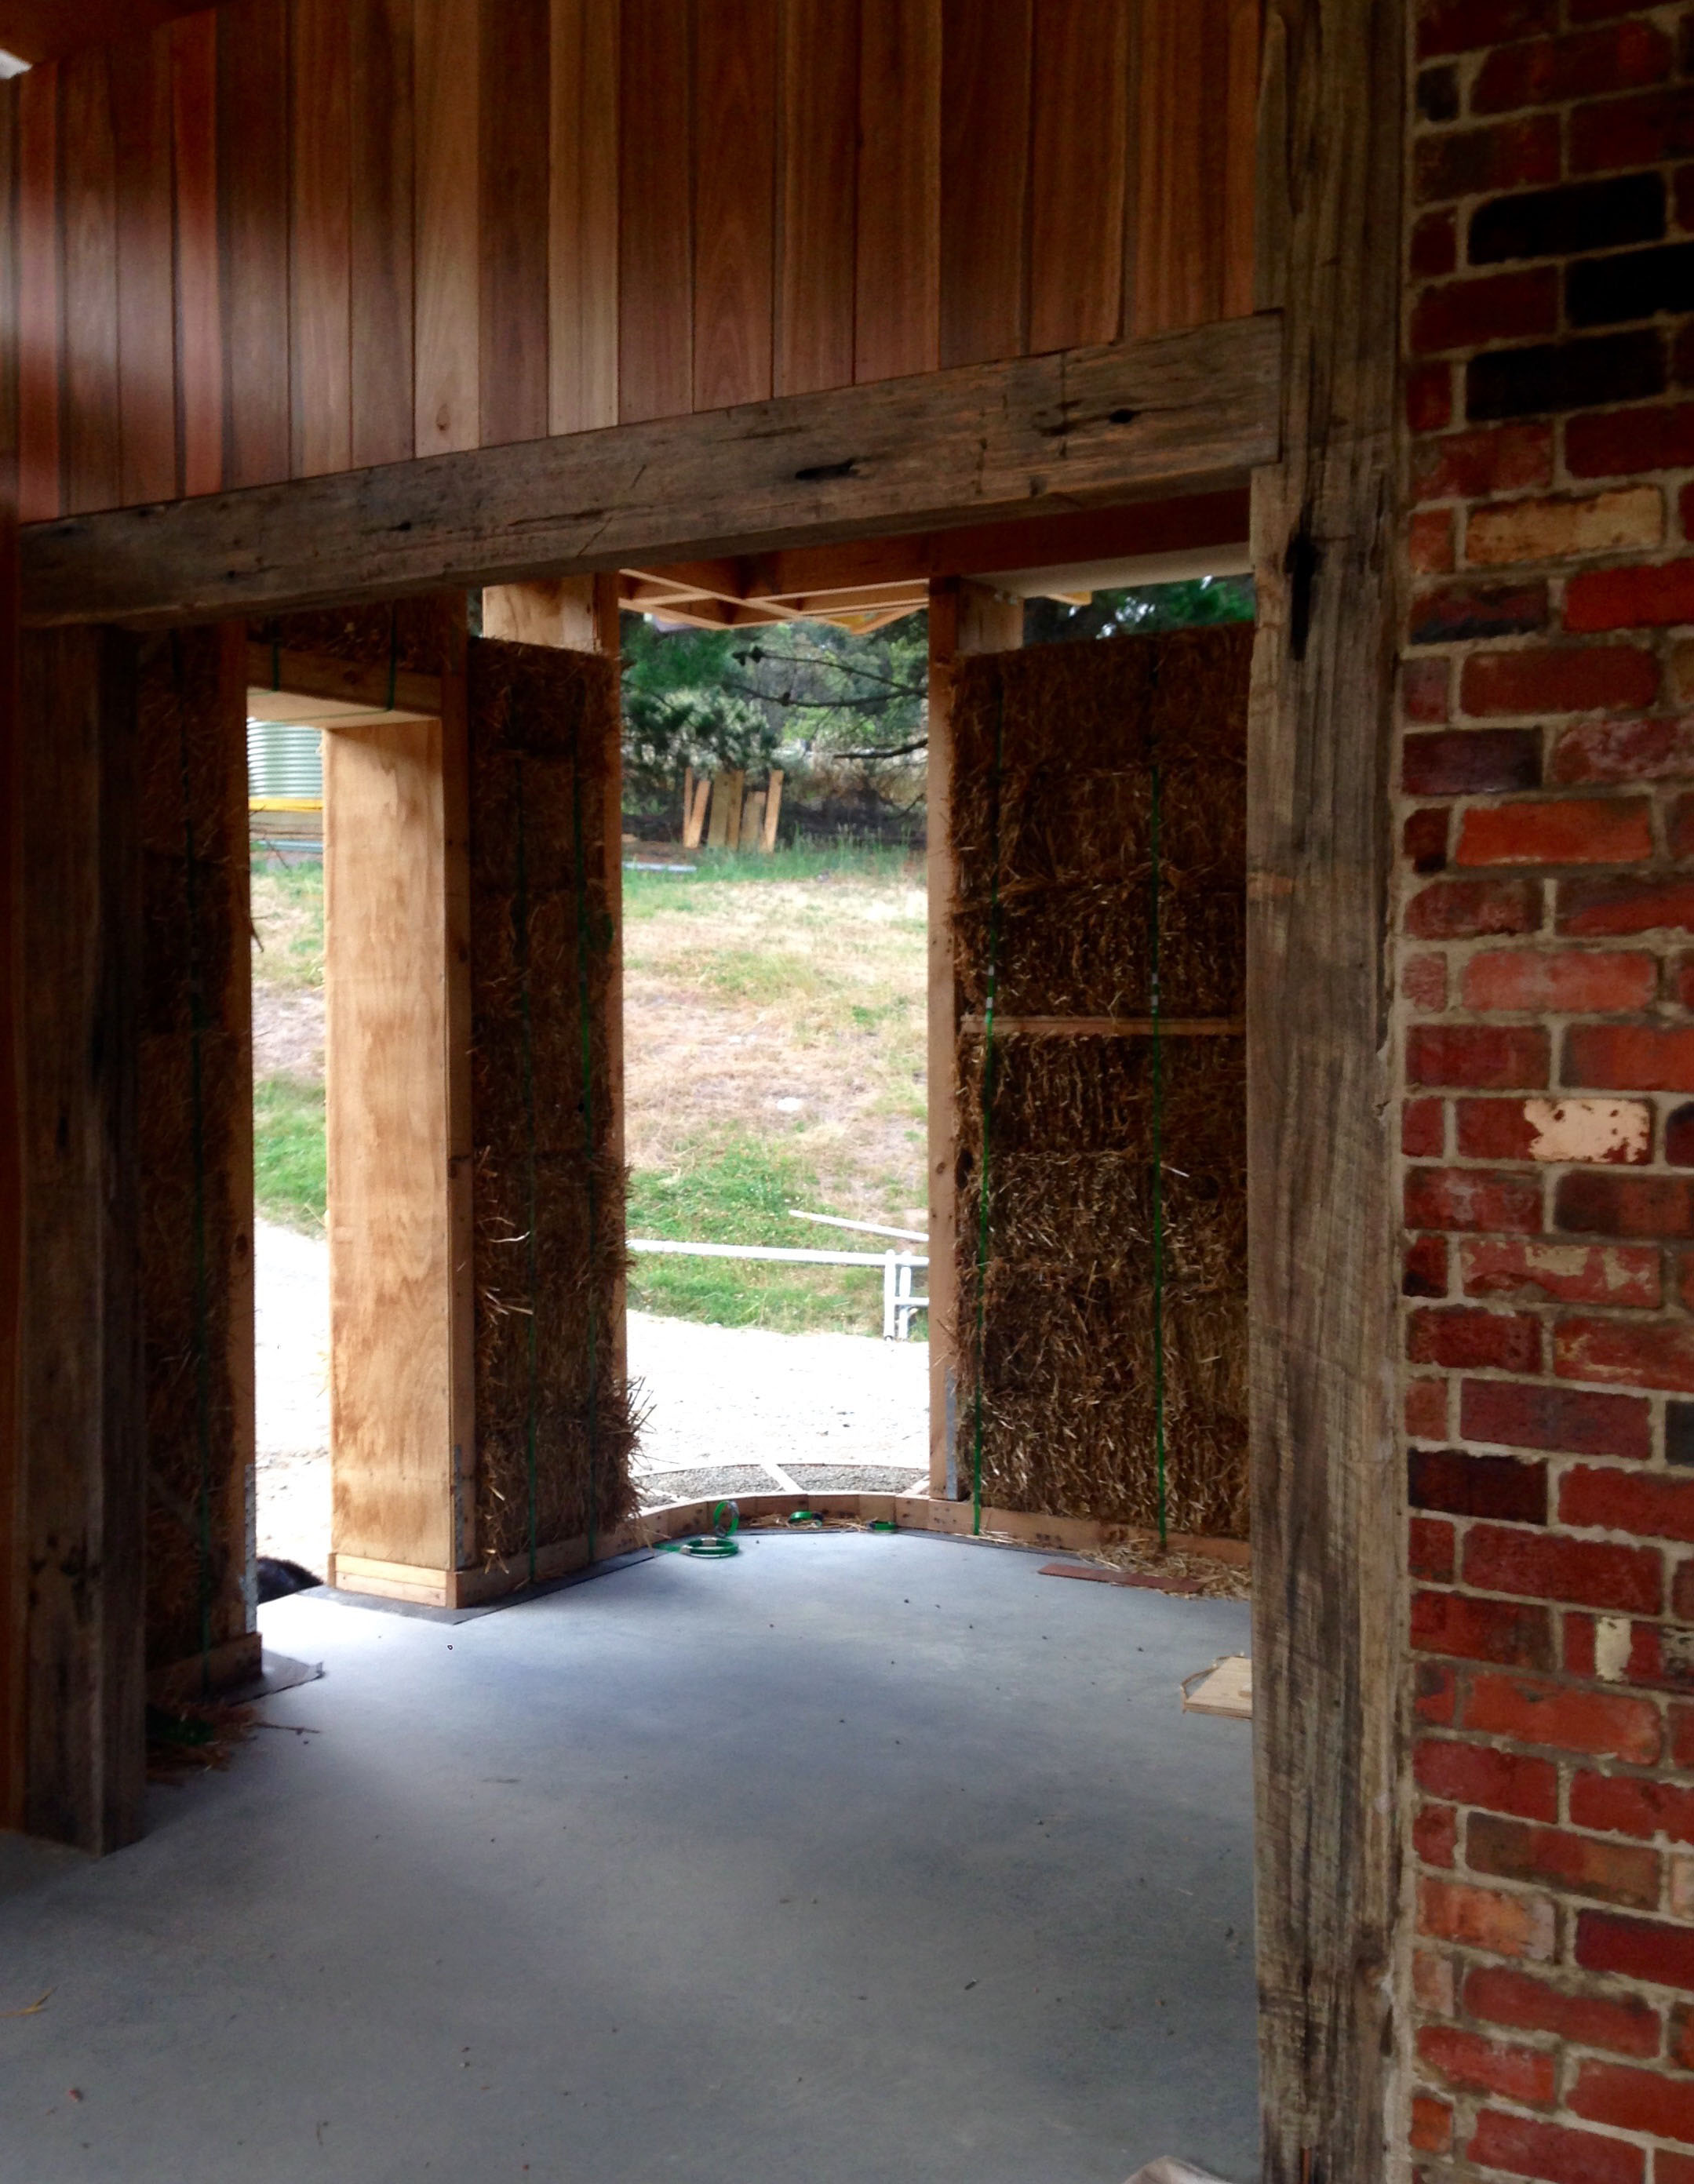 Integral Engineers Projects - Strawbale Home - Image 7.jpg